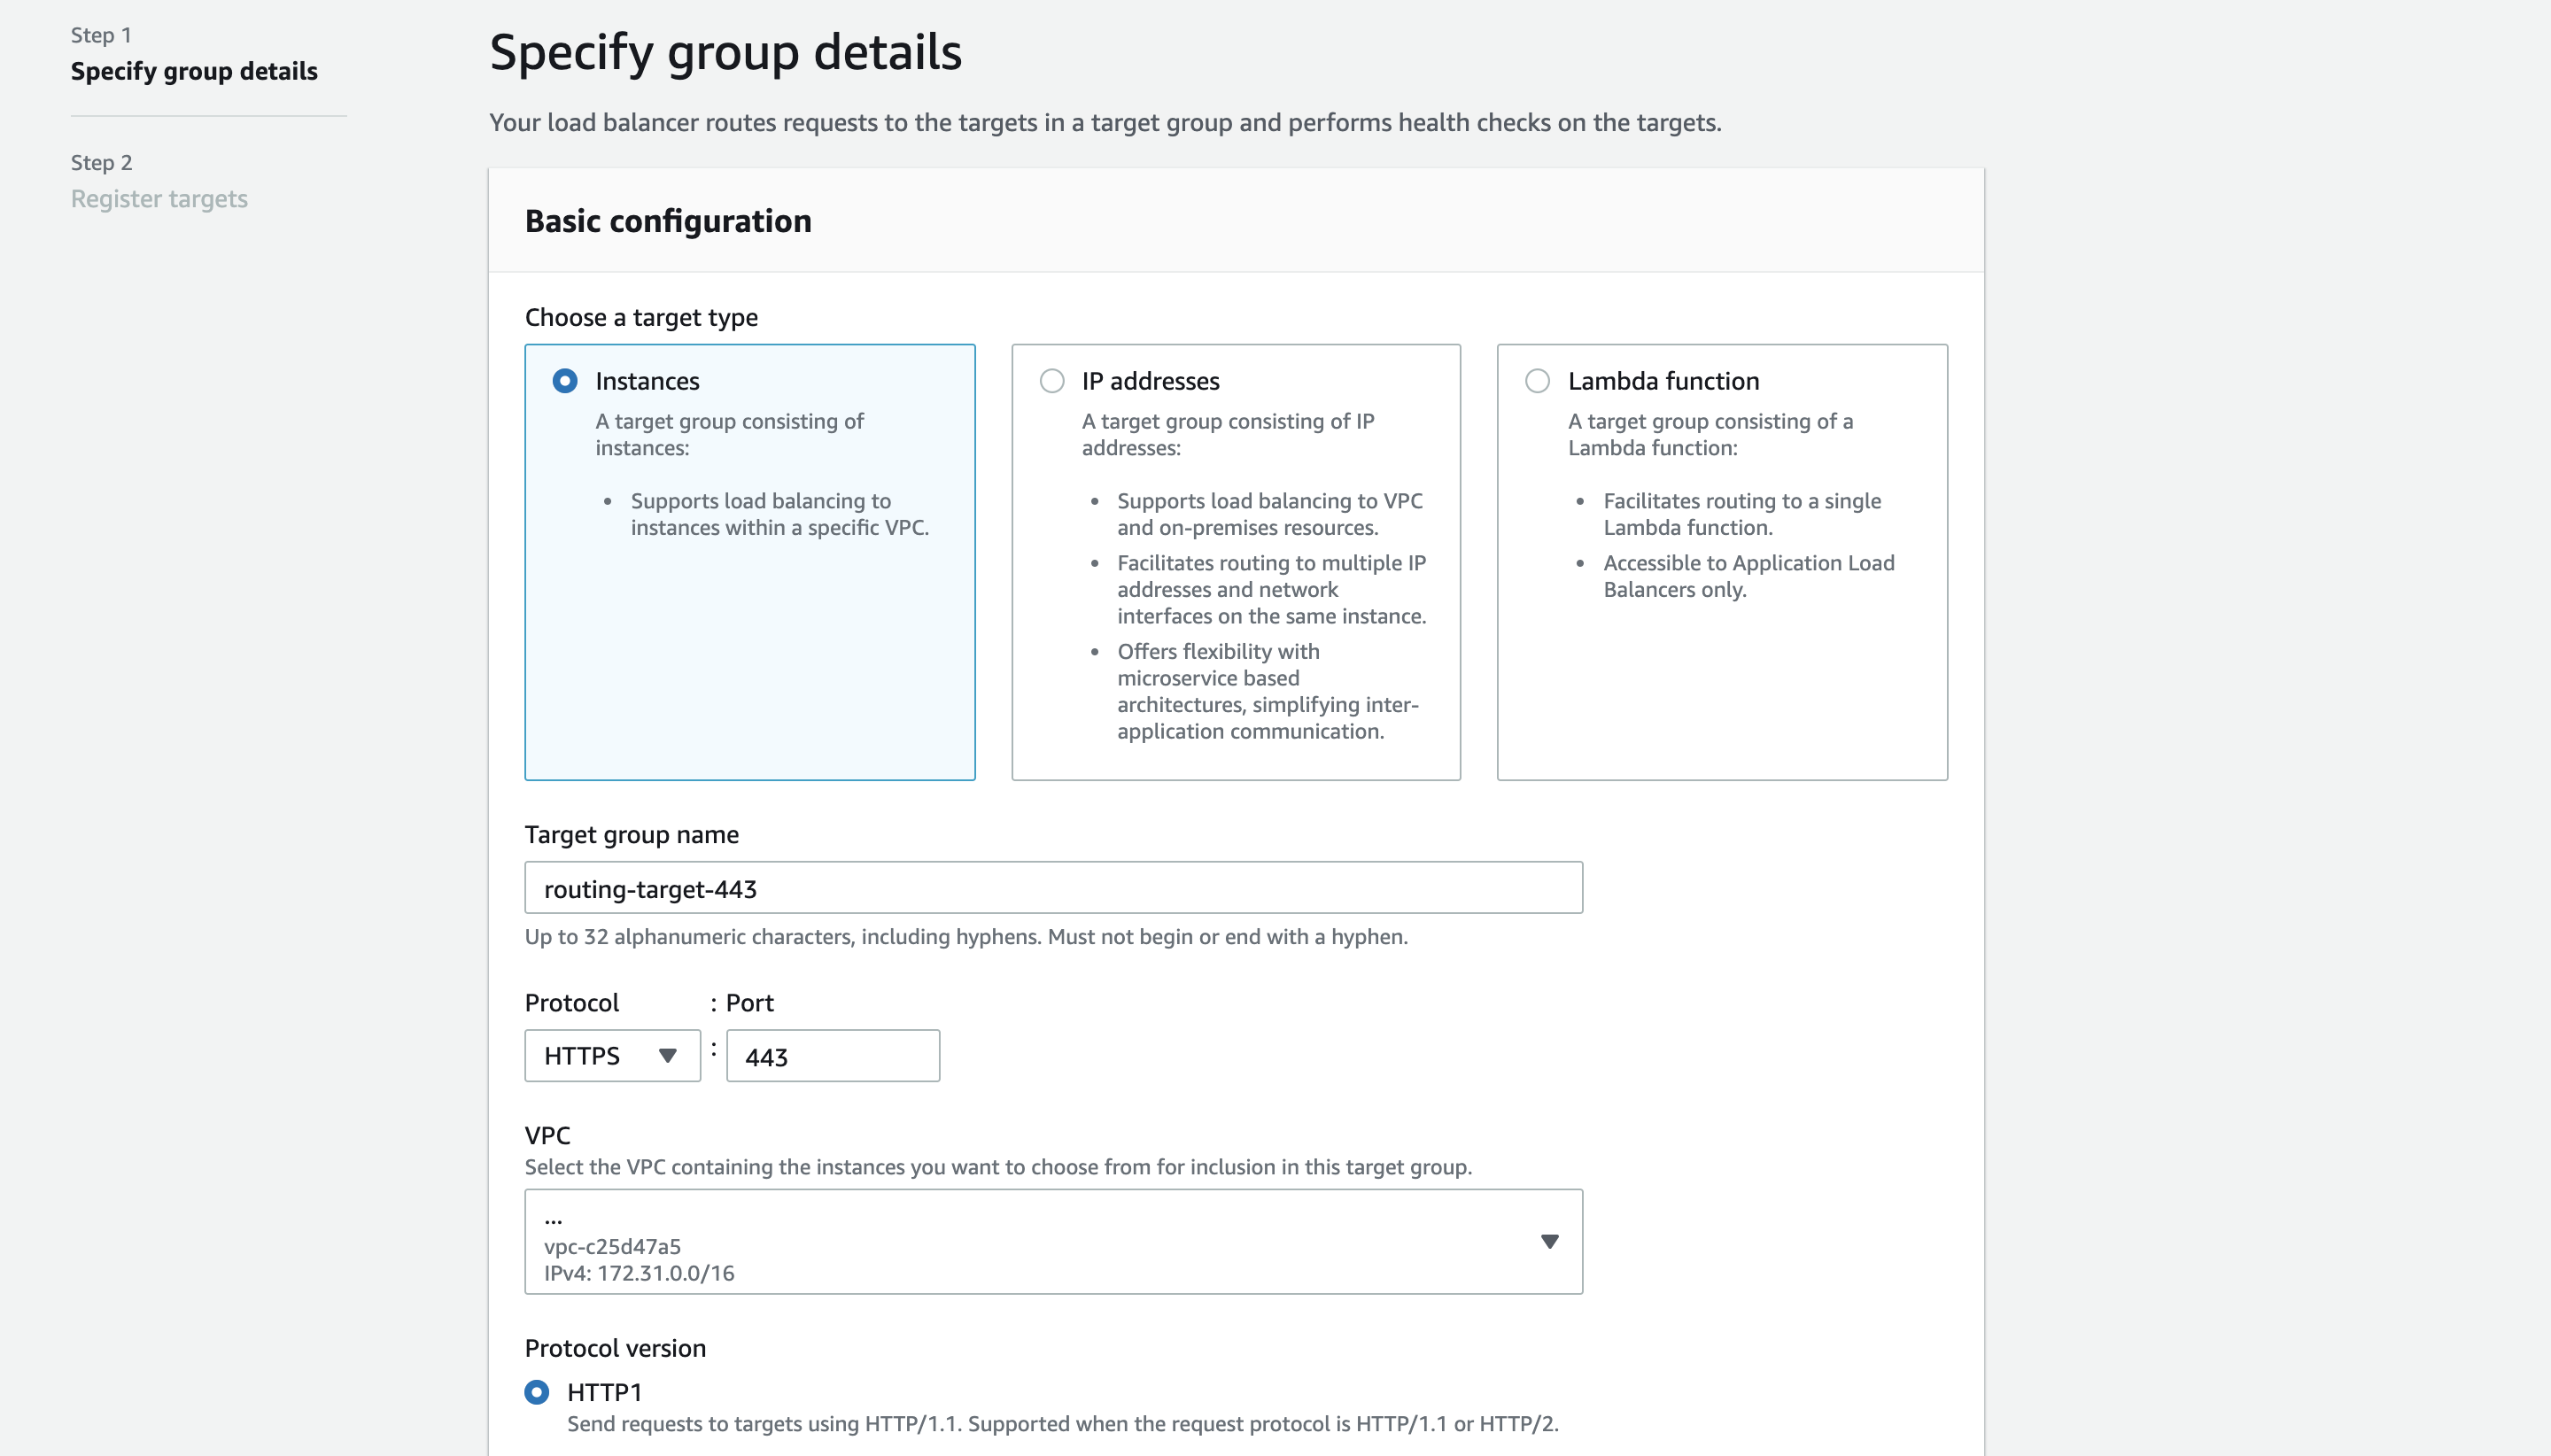 Specify group details